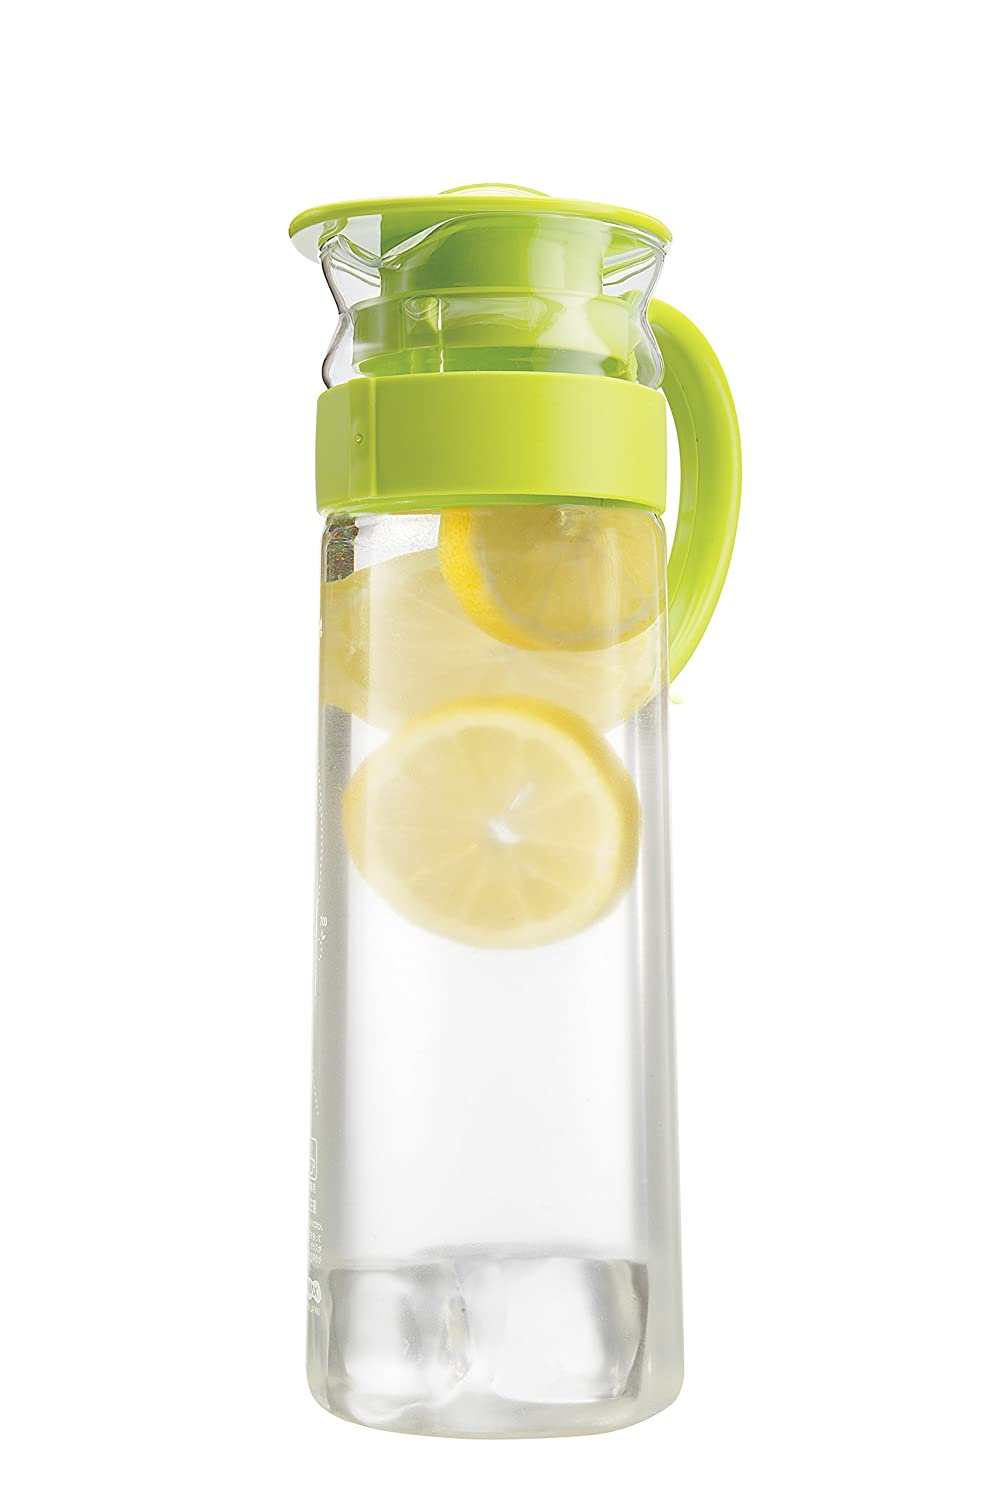 amazoncom  komax aqua glass water  juice pitcher with easy  - amazoncom  komax aqua glass water  juice pitcher with easy handle topour  green lid  bpa free  compact size  oz